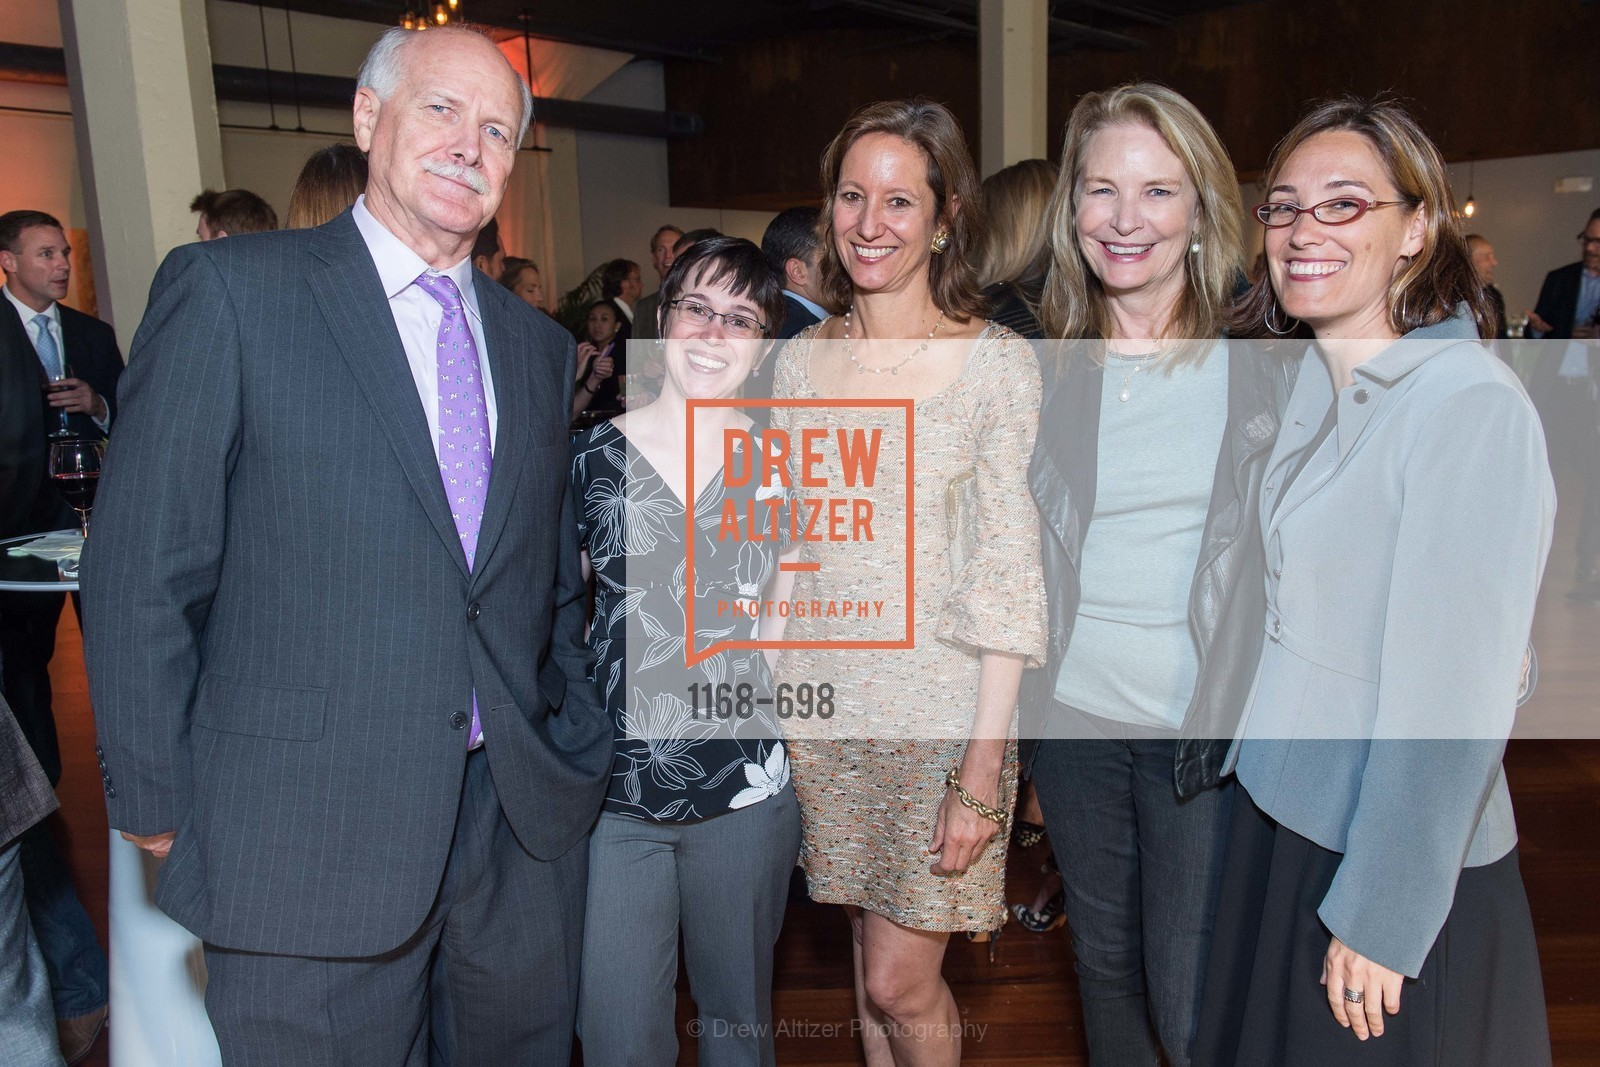 Warner Chabot, Rebecca Sutton, Francesca Vietor, Anna Hawken, Renee Sharp, EWG's 6th Annual Earth Dinner, US, May 6th, 2015,Drew Altizer, Drew Altizer Photography, full-service agency, private events, San Francisco photographer, photographer california